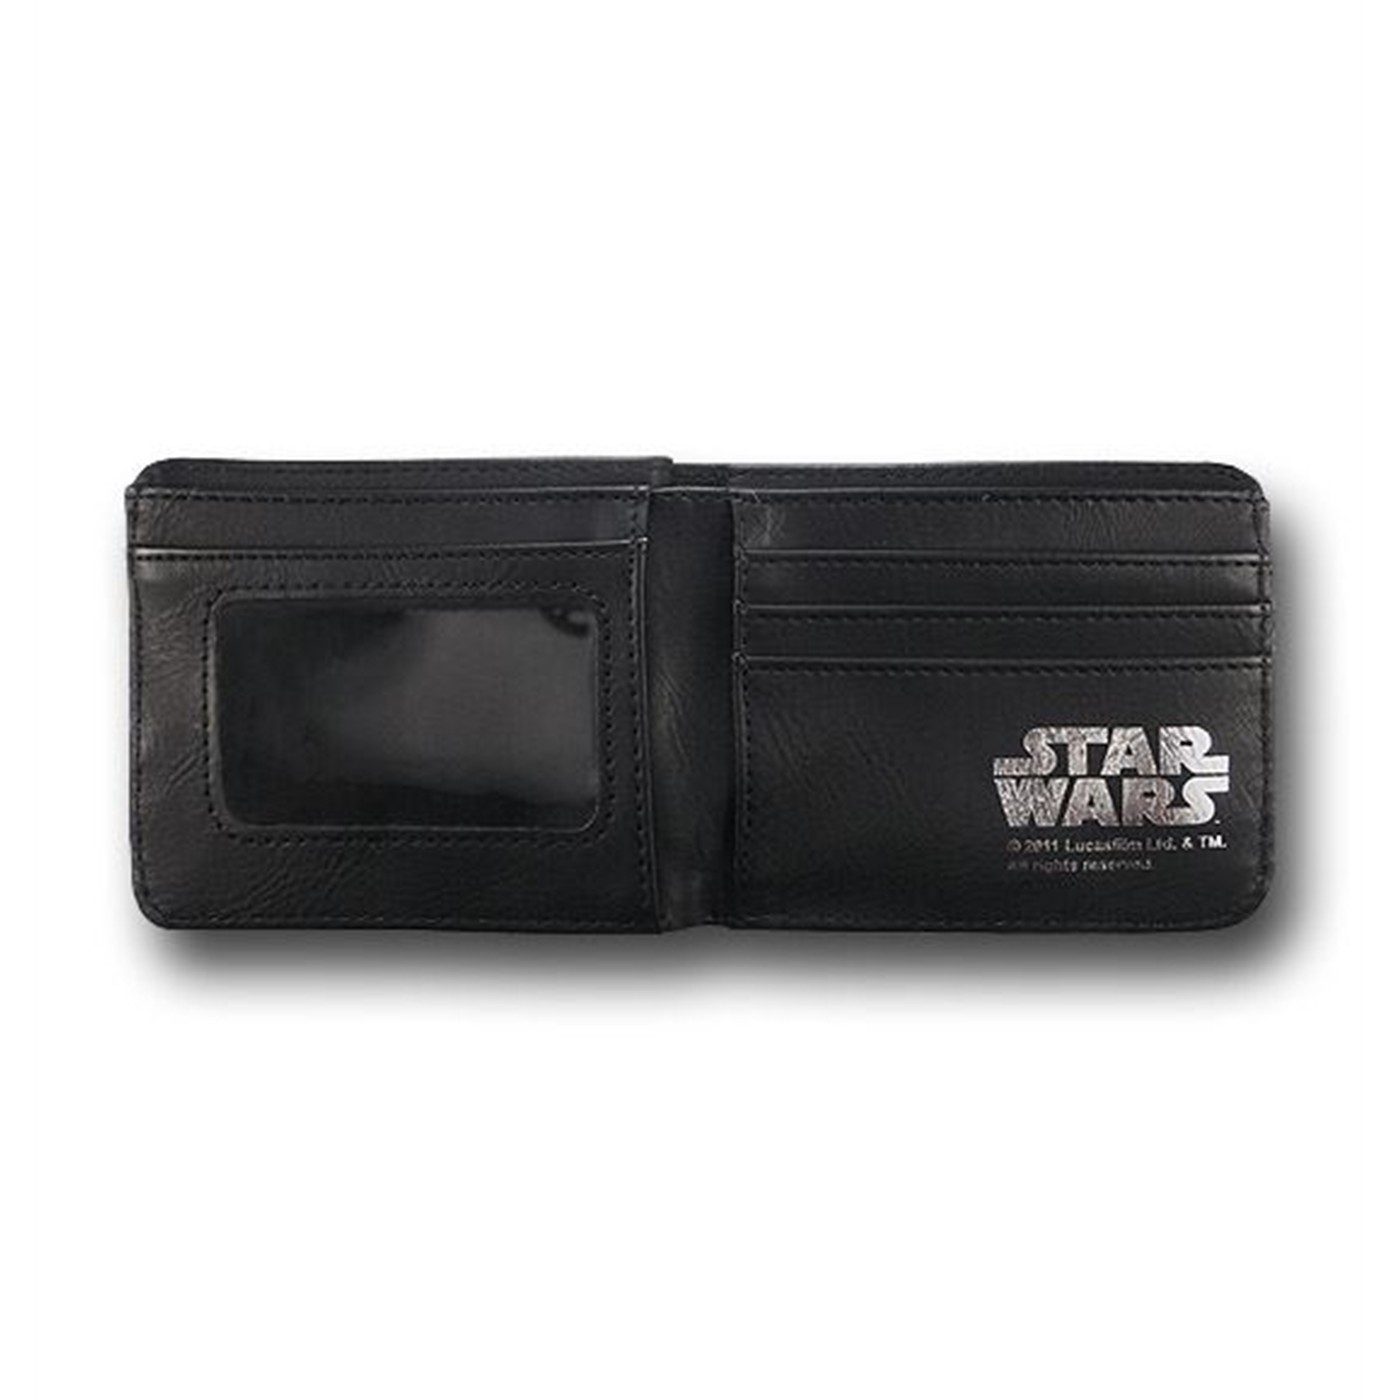 Star Wars Poster PVC Wallet